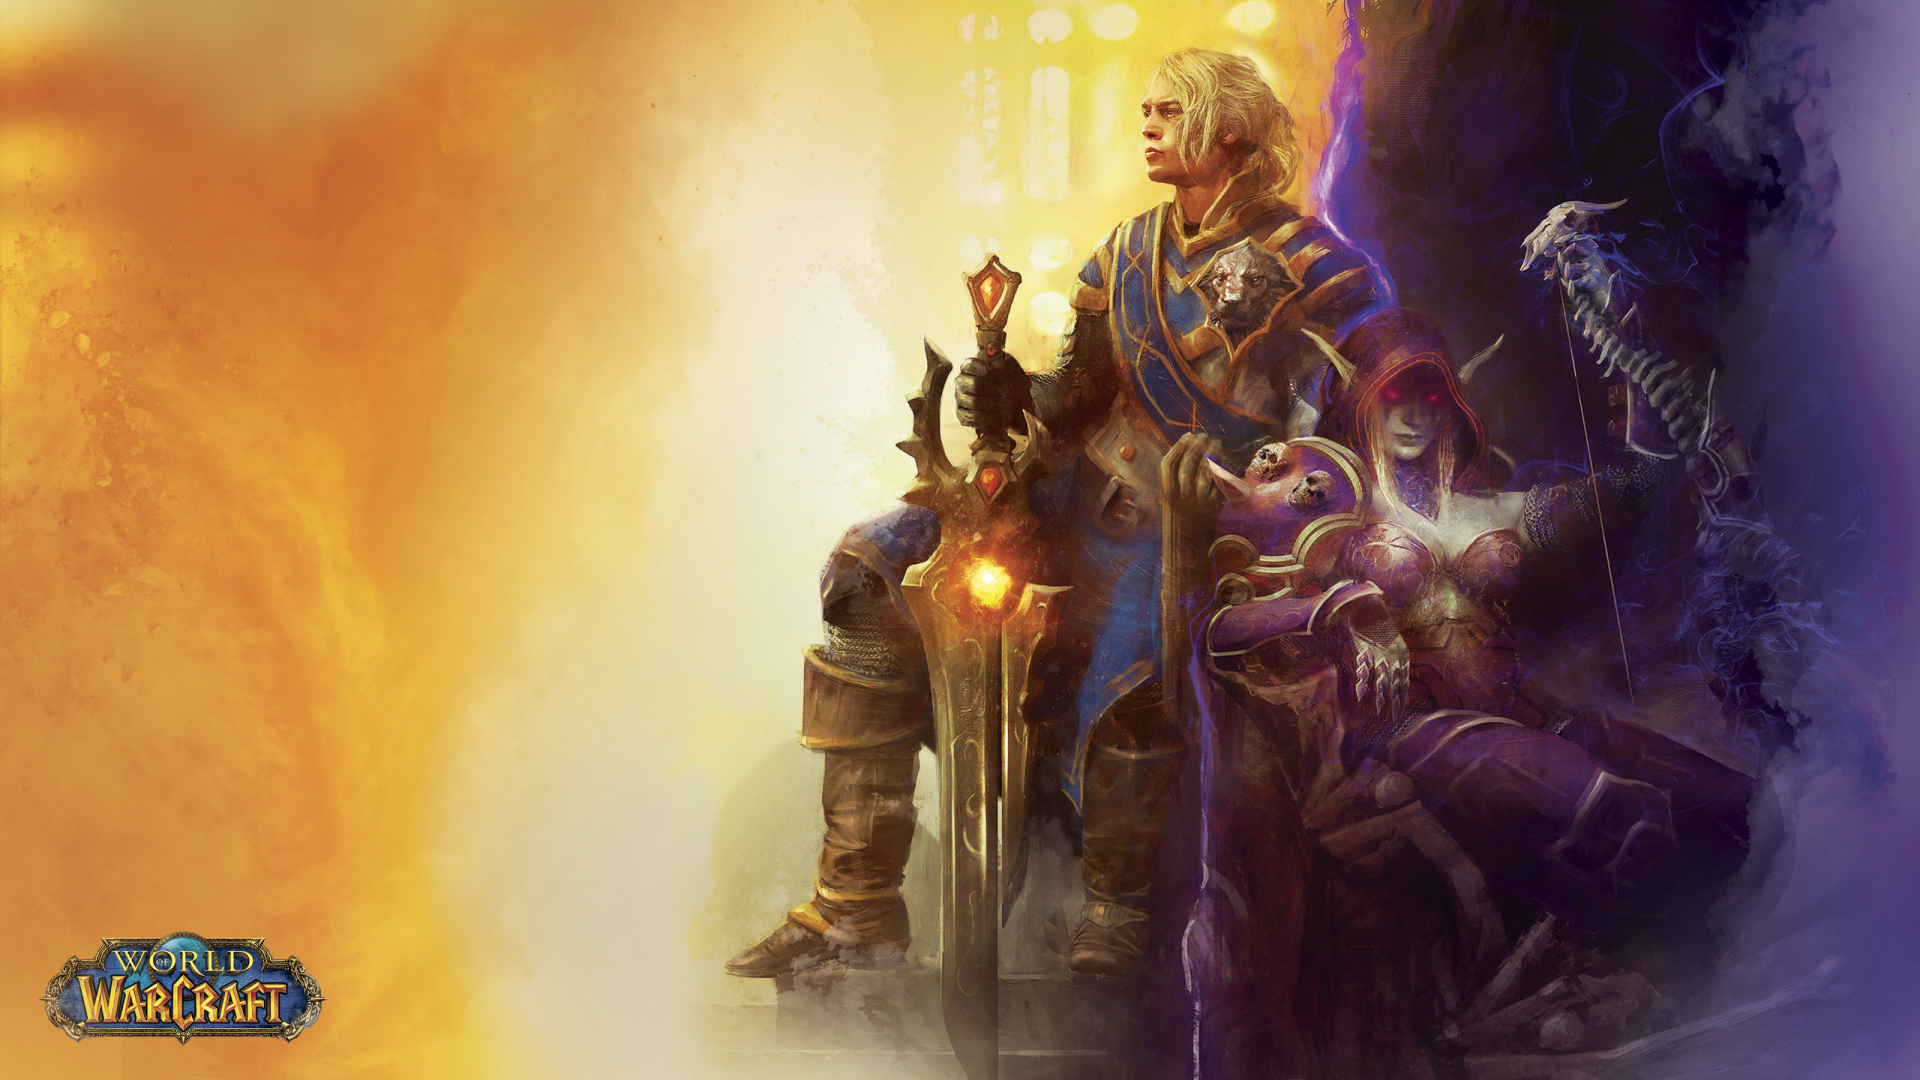 1920x1080 World Of Warcraft Battle For Azeroth Game 1080p